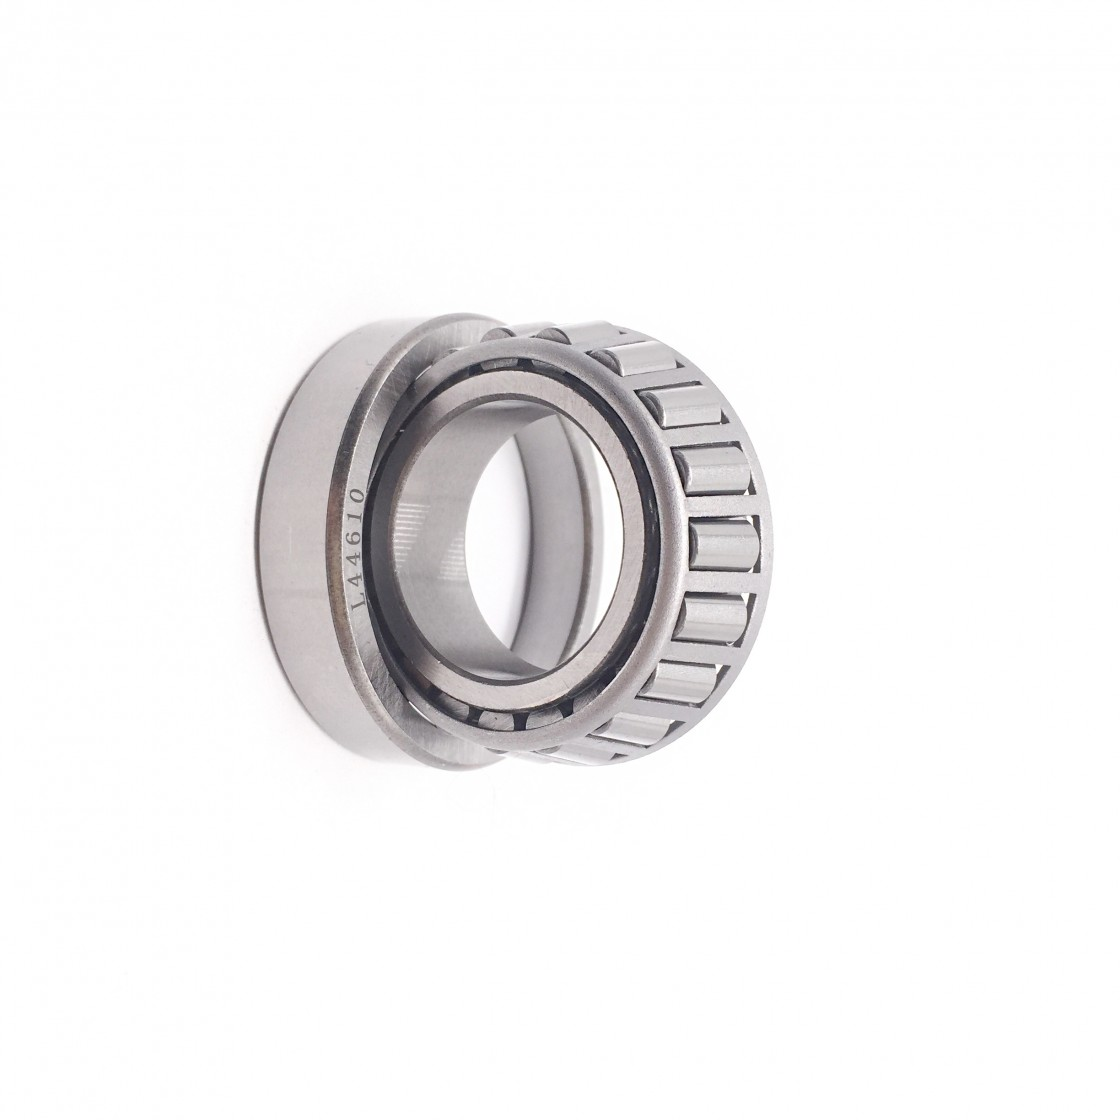 SKF NSK Timken Koyo NACHI NTN Snr Bearing 6200 6202 6204 6206 6208 6210 6006 6304 6306 6308 6310 Wear Resistant High Quality Ball Bearing